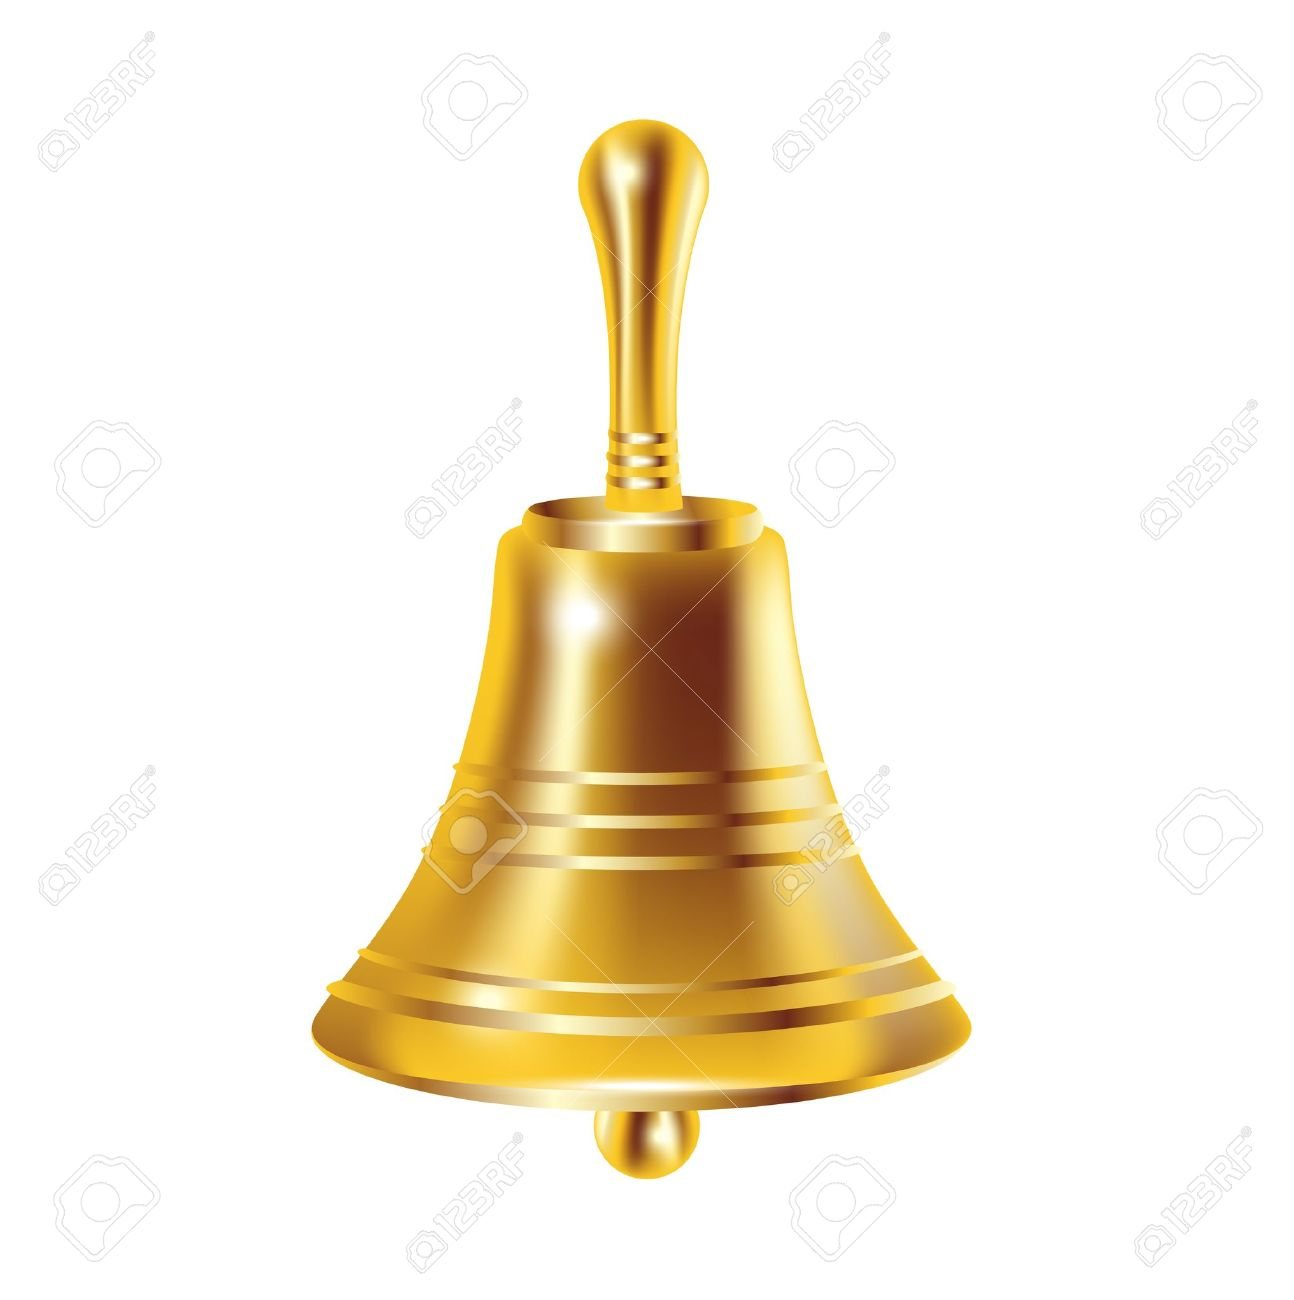 single bronze bell isolated on white - 13709529